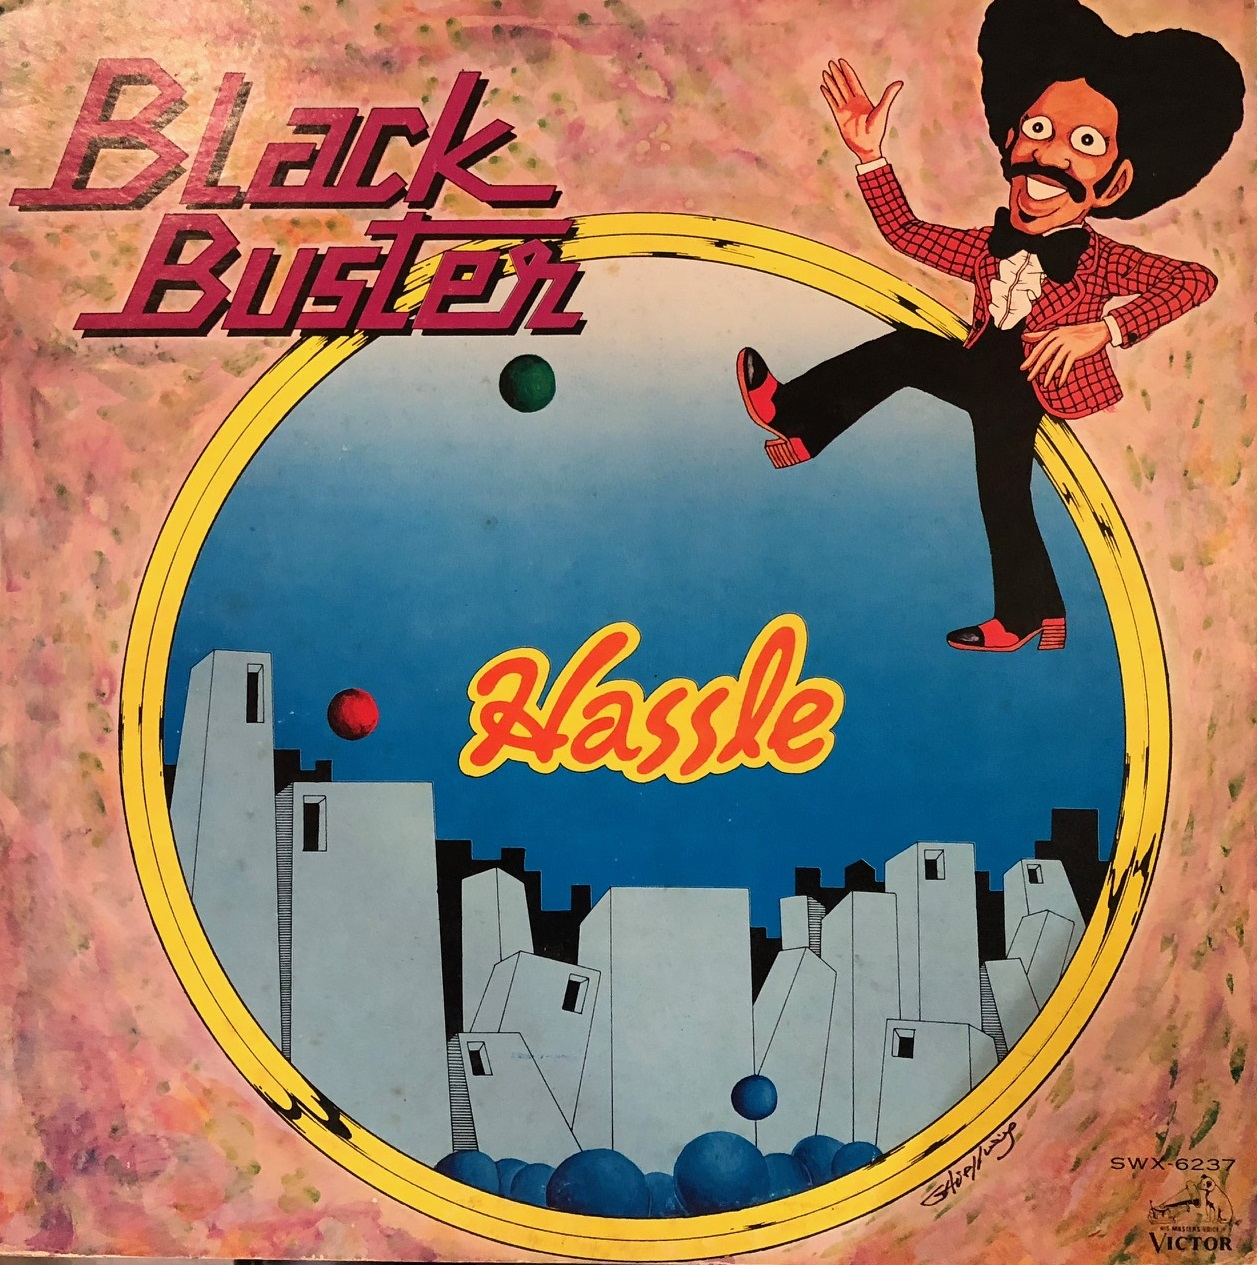 BLACK BUSTER / HASSLE